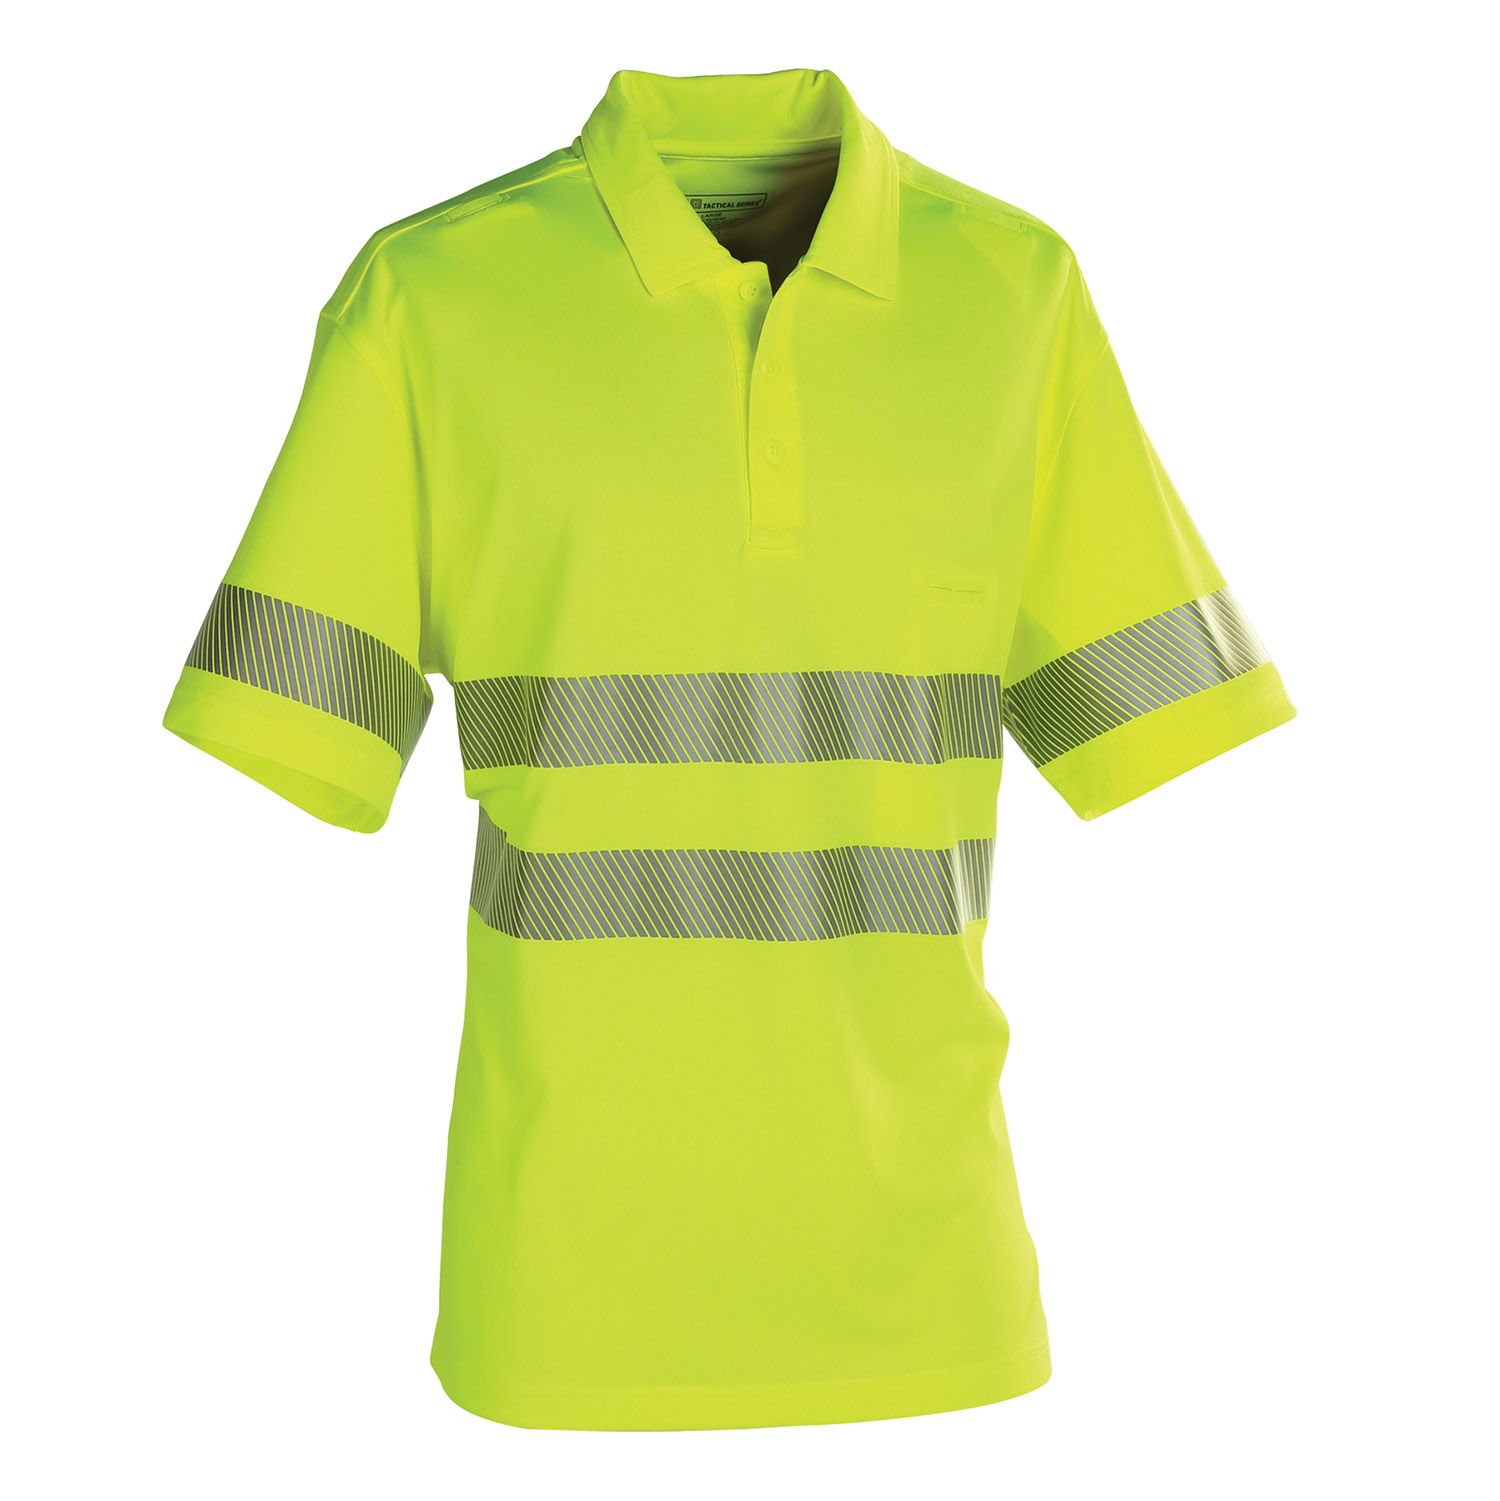 5.11 Tactical High Visibility Short Sleeve Polo